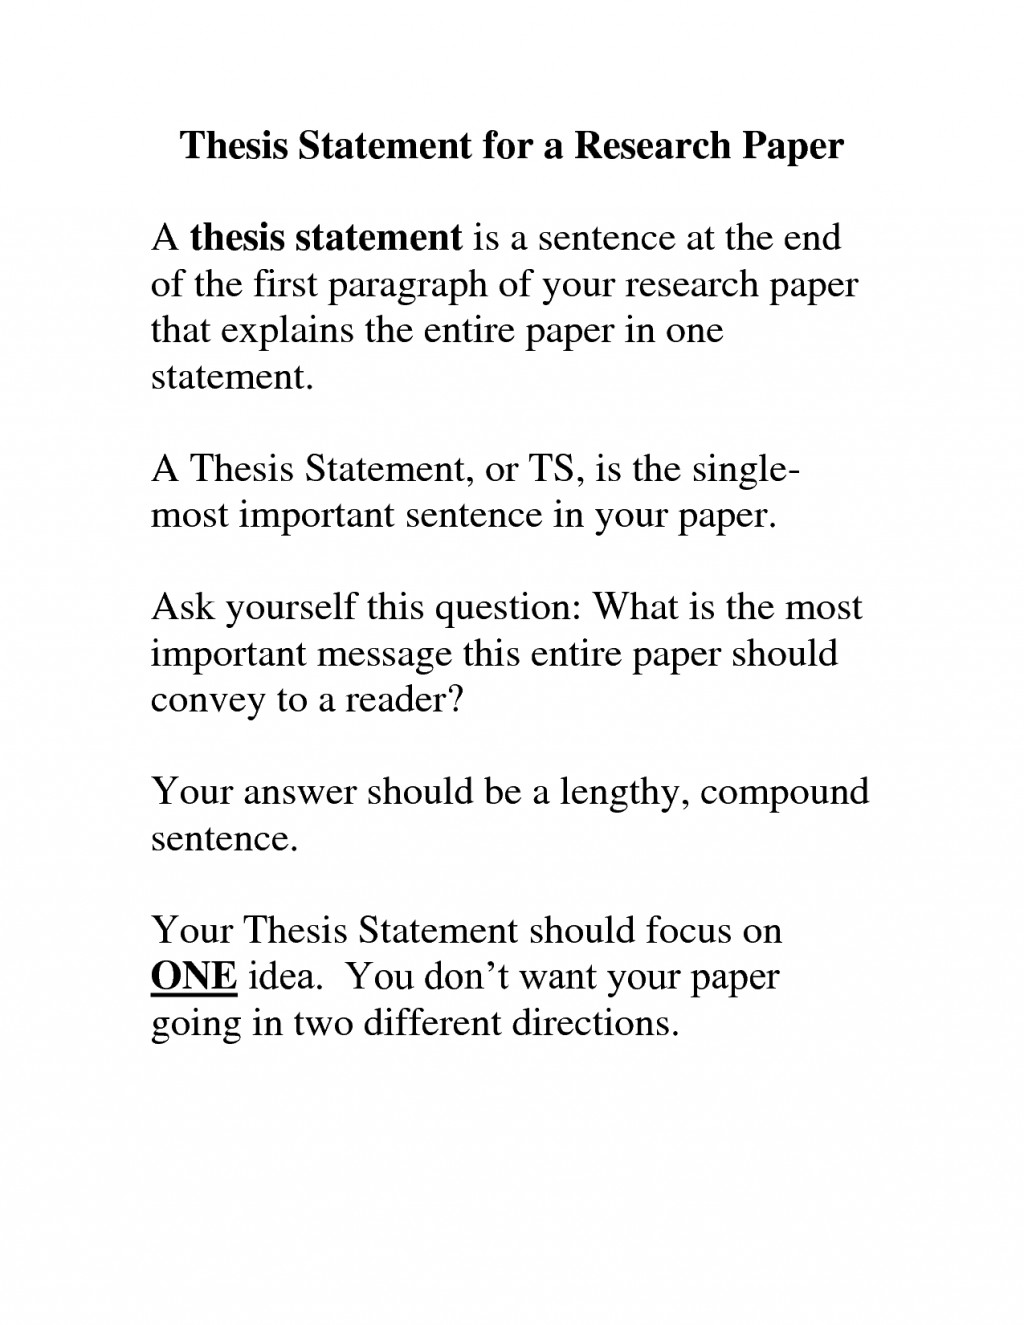 003 How To Write Thesis Statement For An Essays Of Statements Research Papers Phpu9vwg Frightening A Essay Do You Informative Step By Argumentative Large